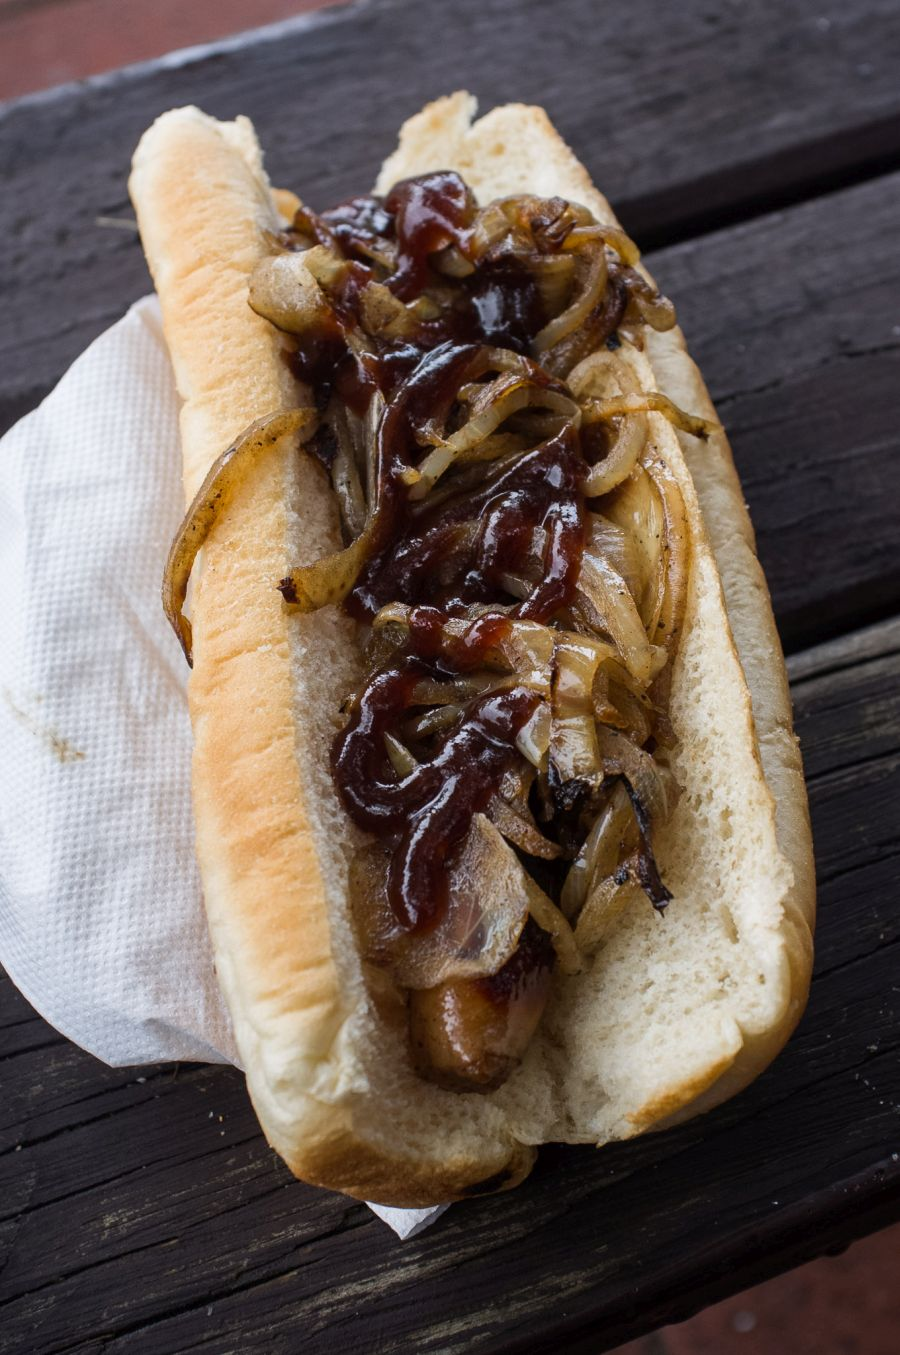 My sausage sizzle: sausage, extra onions, barbecue sauce